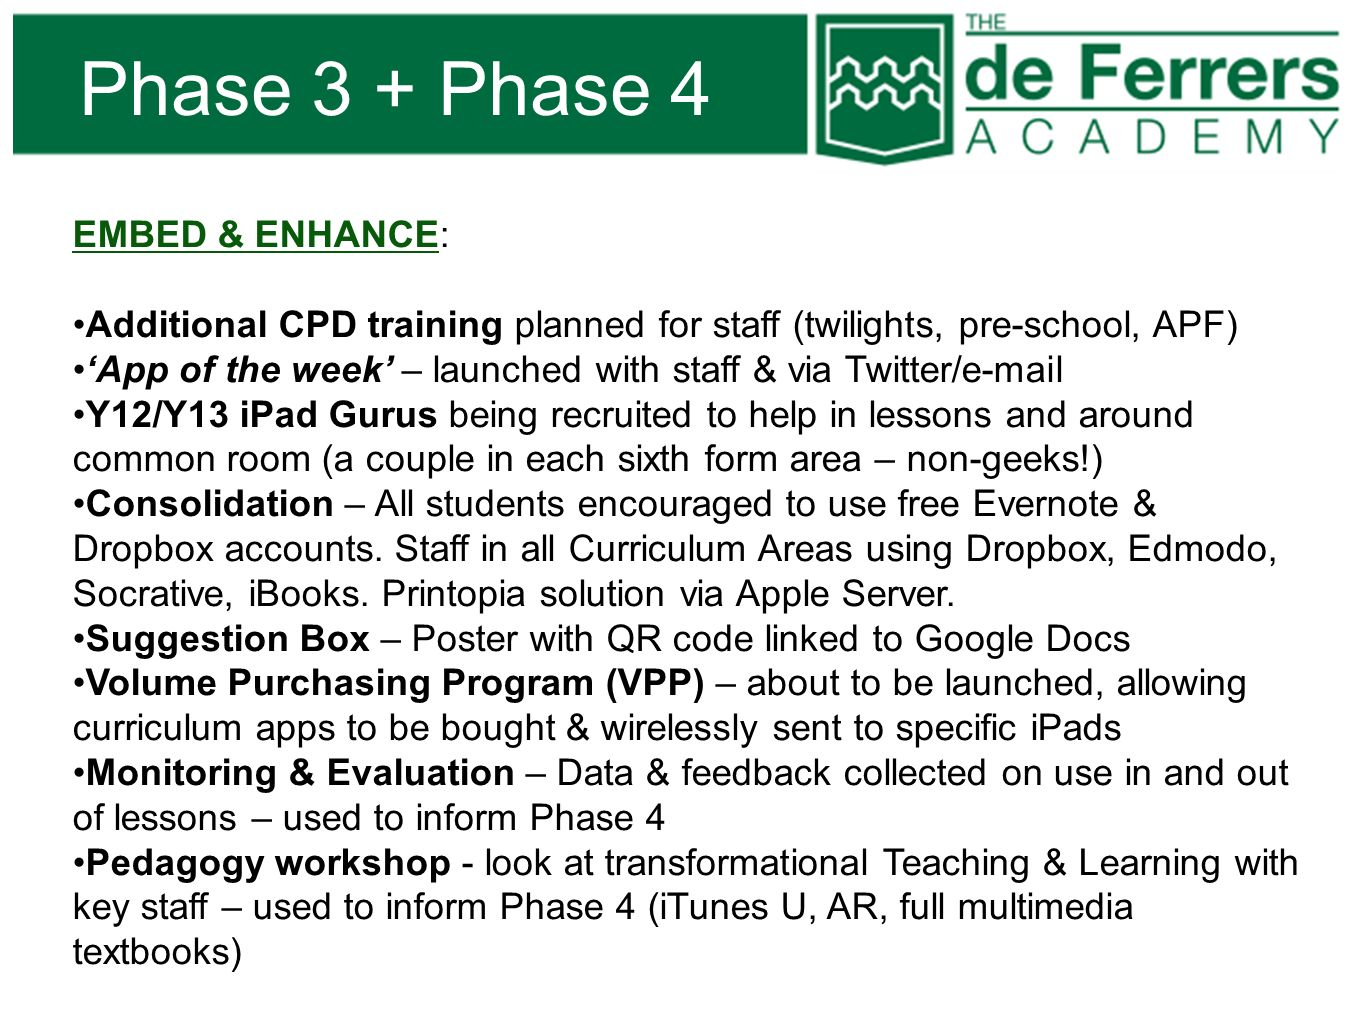 Phase 3 + Phase 4 EMBED & ENHANCE: Additional CPD training planned for staff (twilights, pre-school, APF) App of the week – launched with staff & via